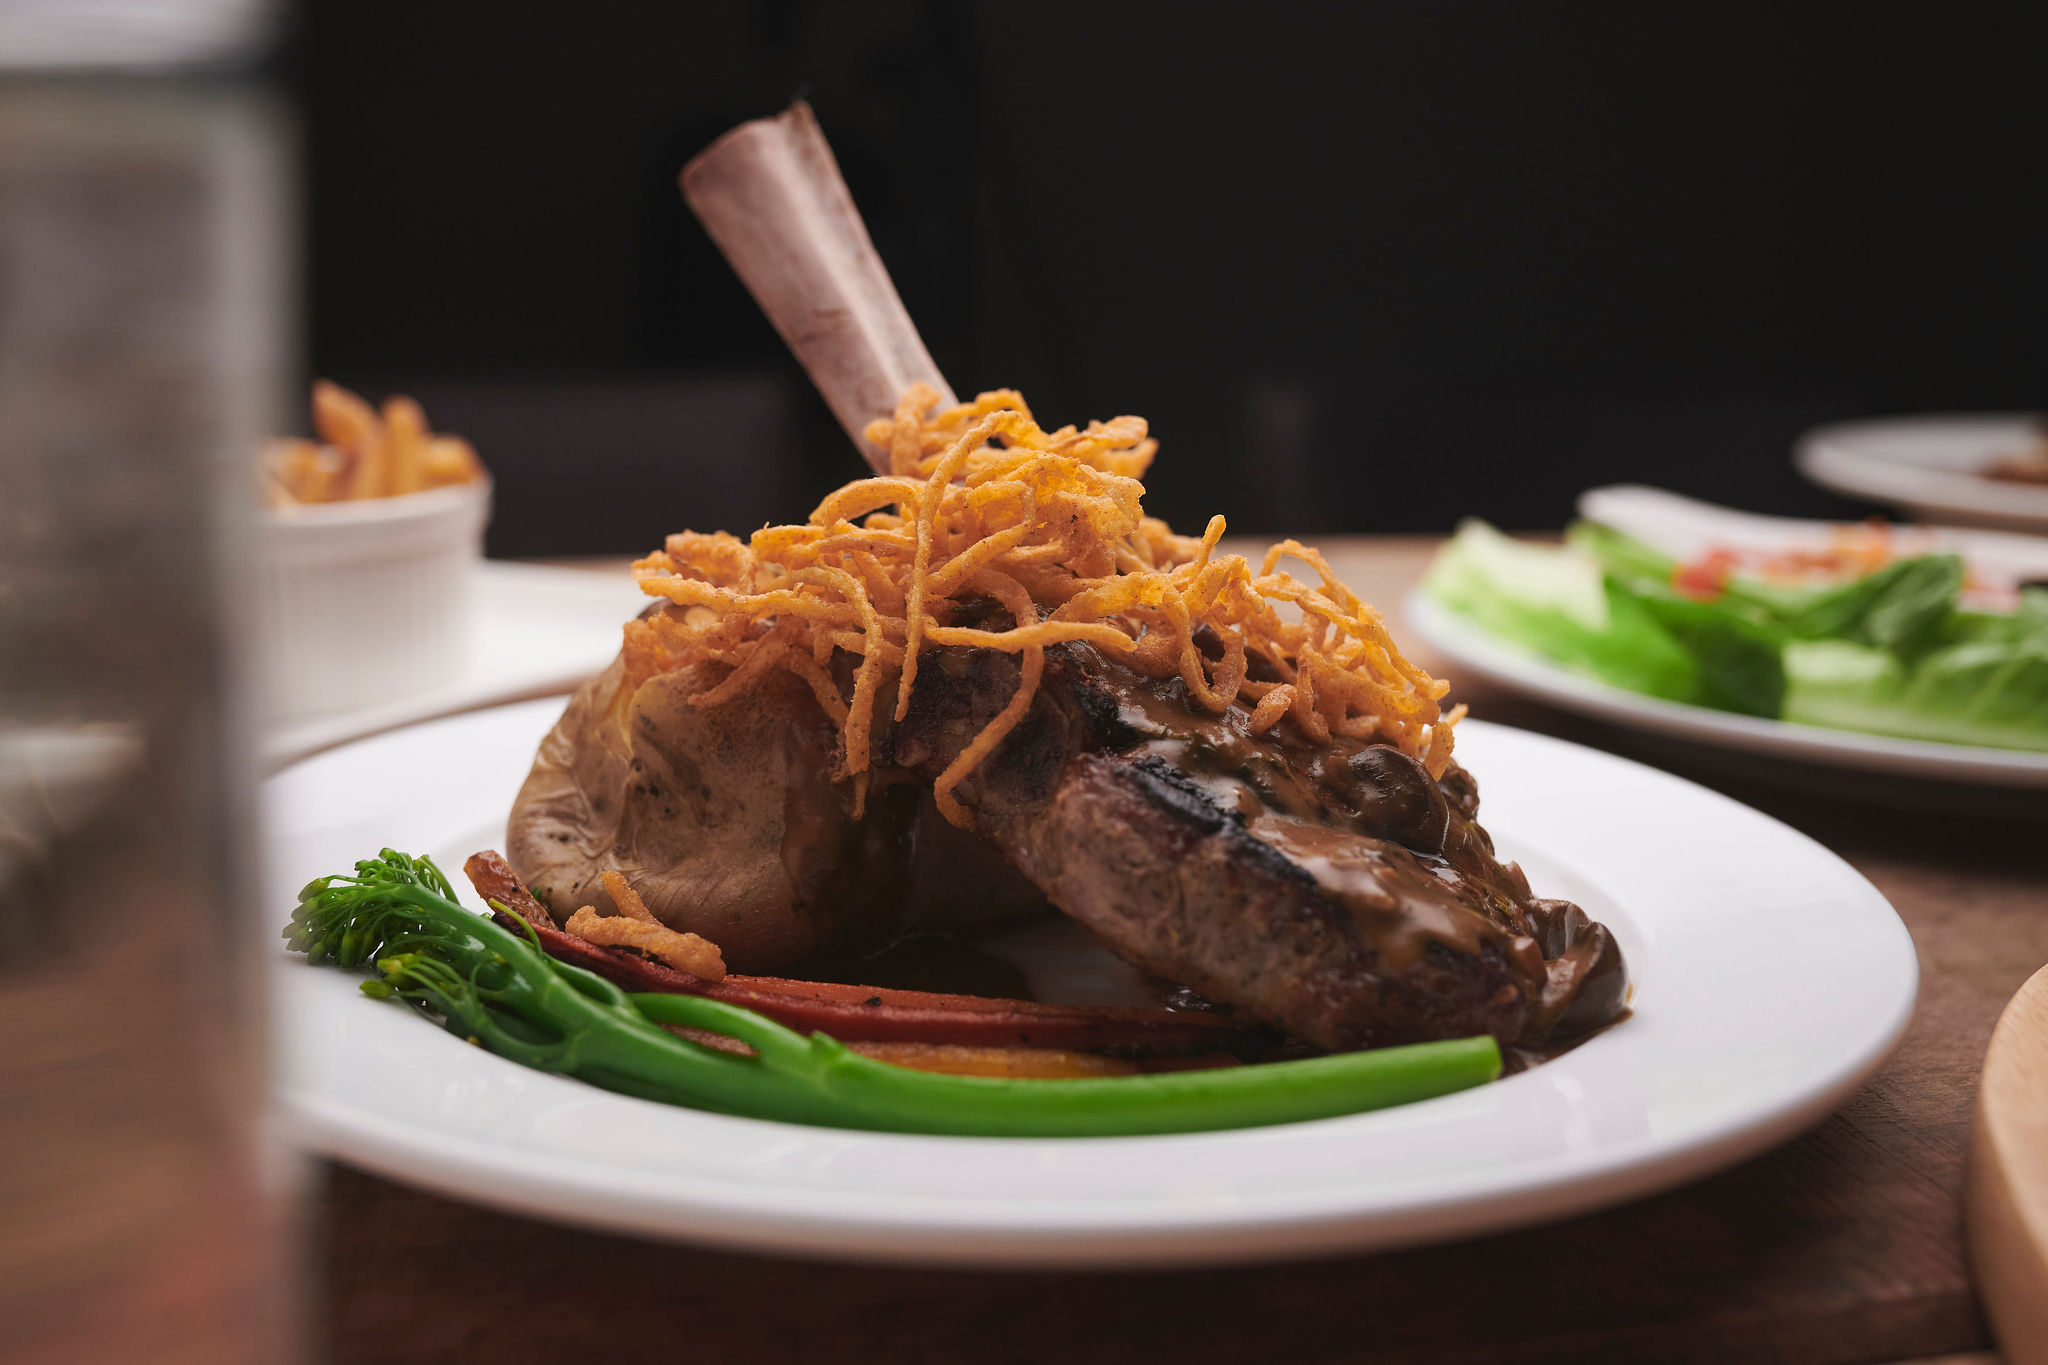 A bone-in lamb chop upright on an angle in the middle of a white circular plate, with vegetables on the side.